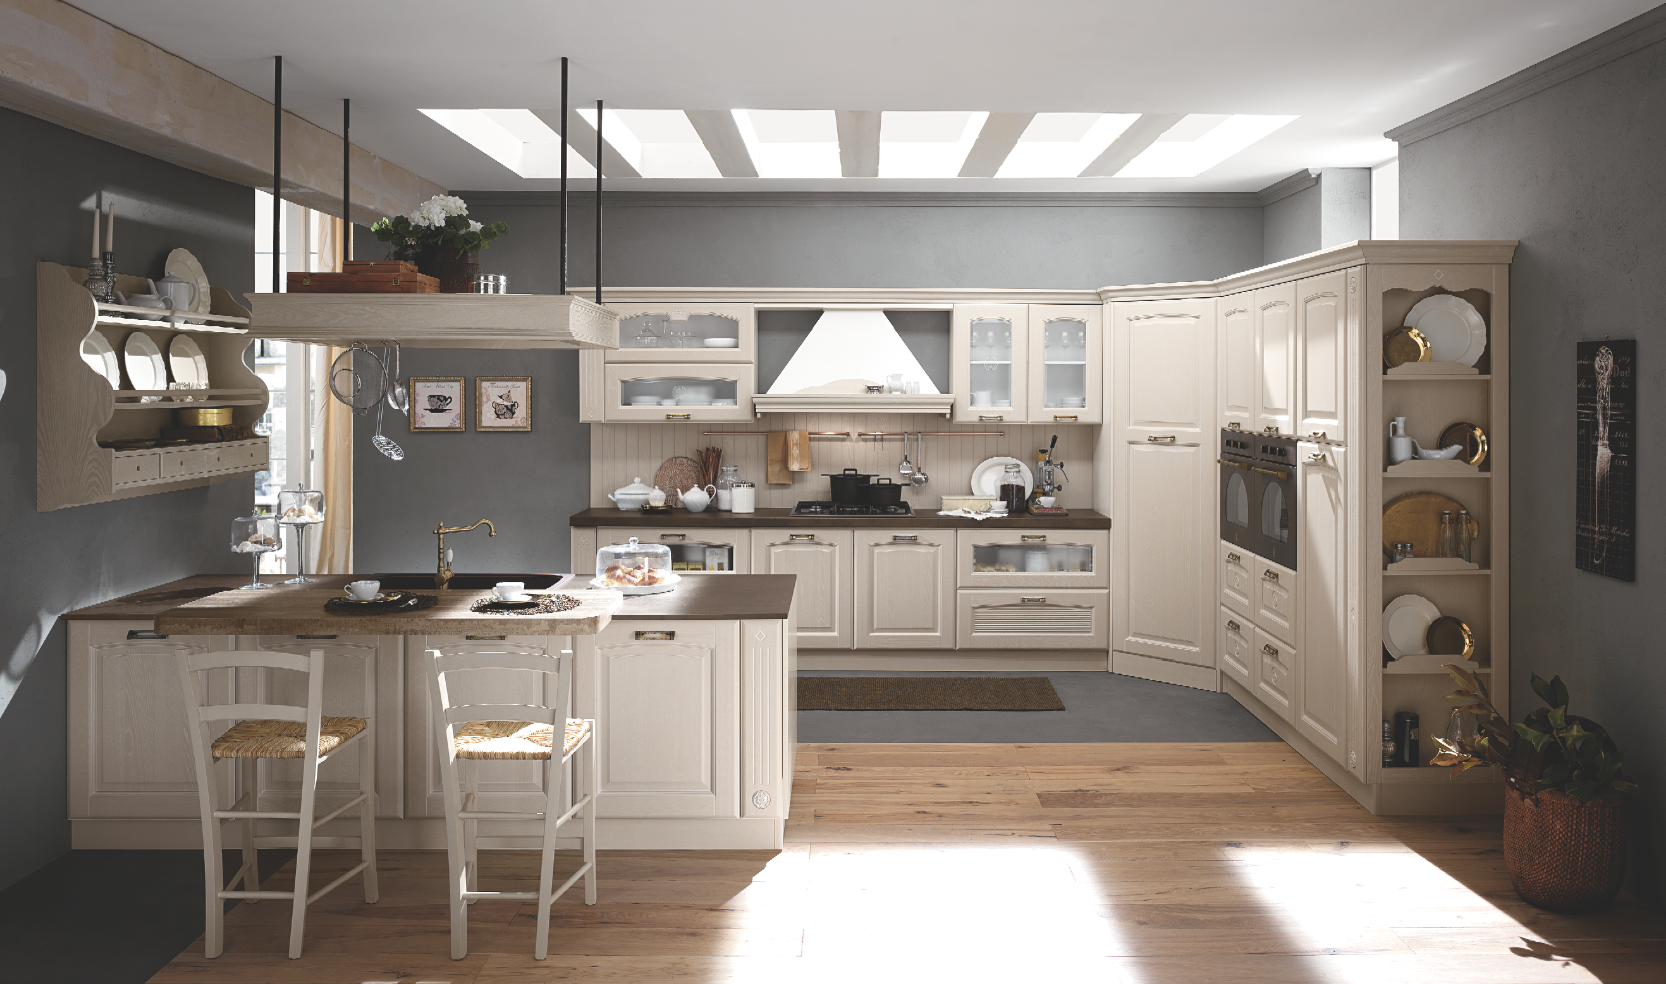 Cucina Mobili Classica.Pin Su Spaces Where Eating Is A Pleasure Kitchens